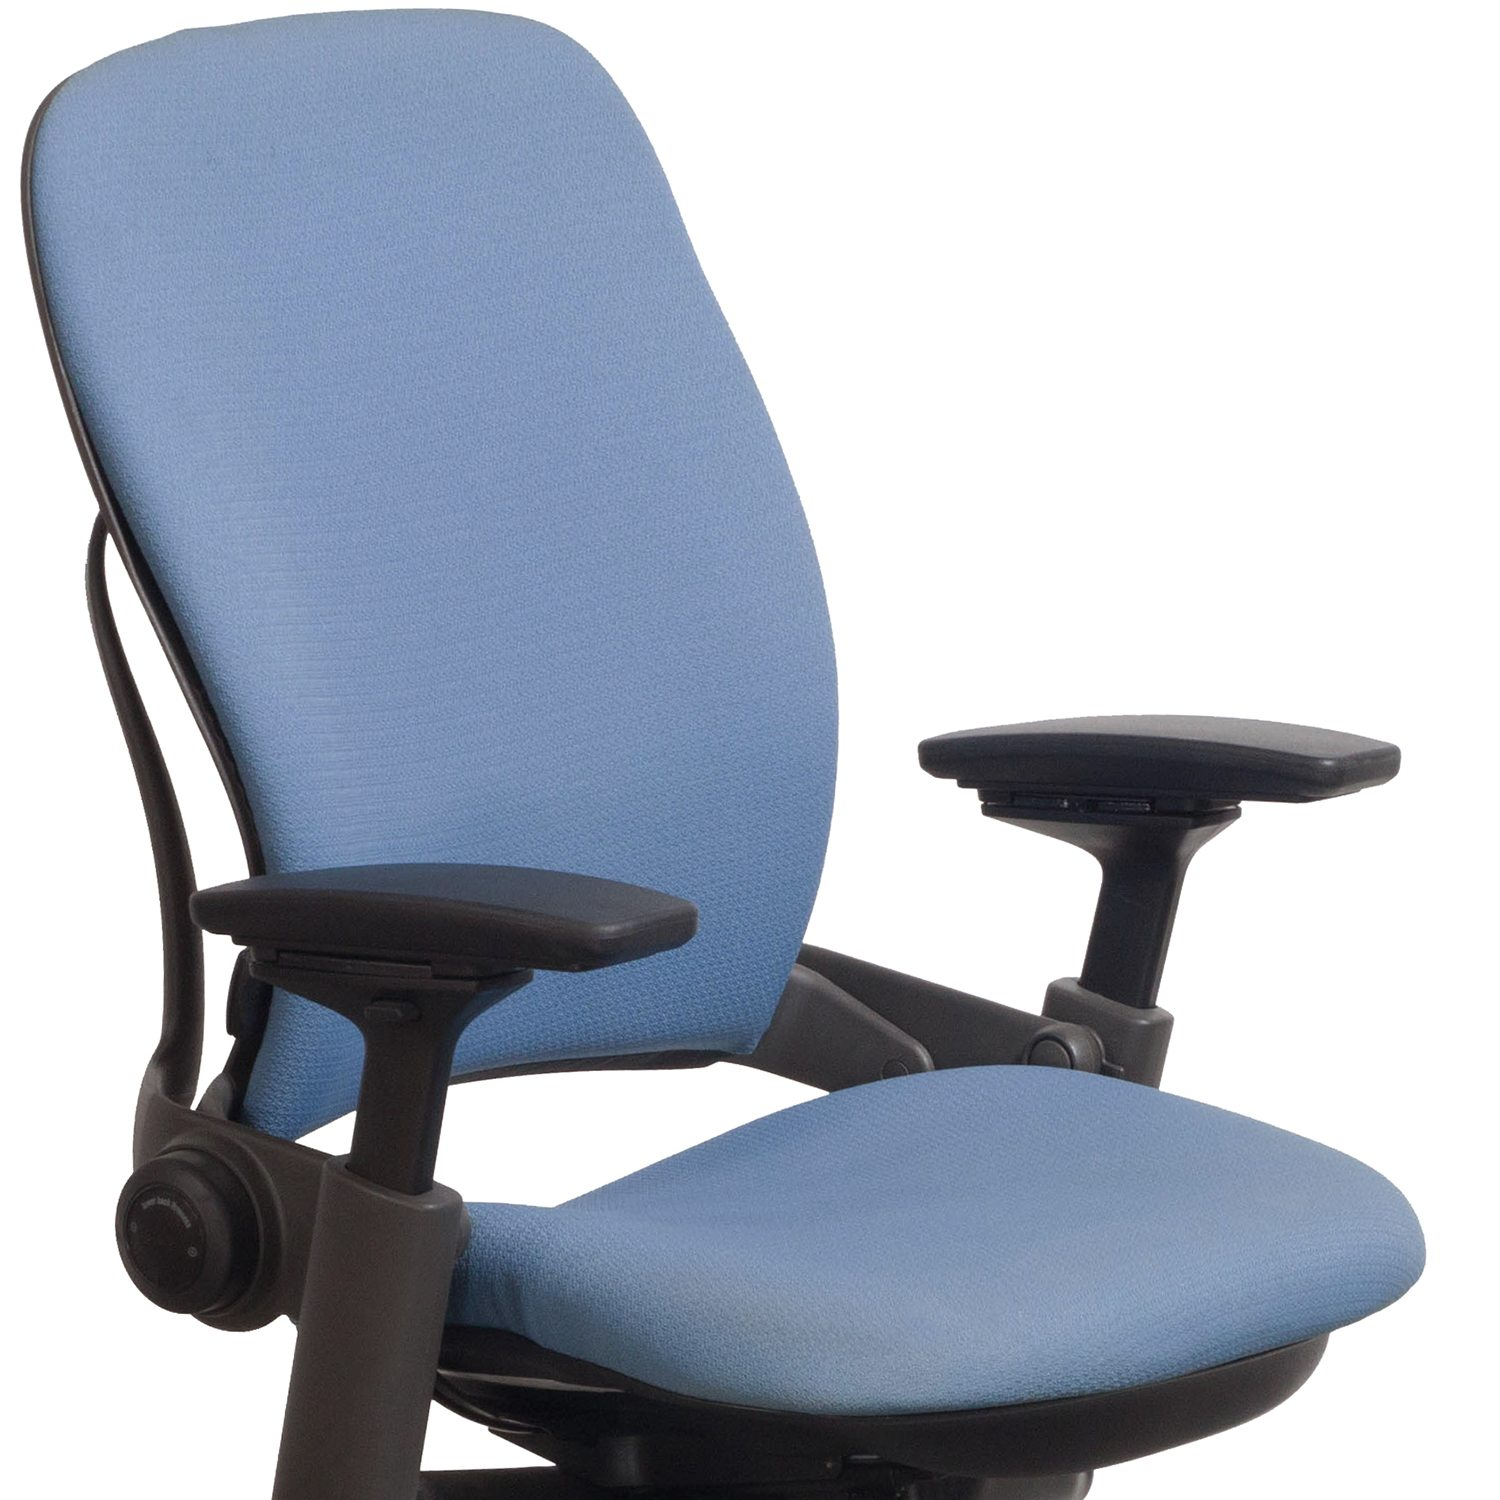 sky chair accessories bedroom diy steelcase leap v2 used task national office